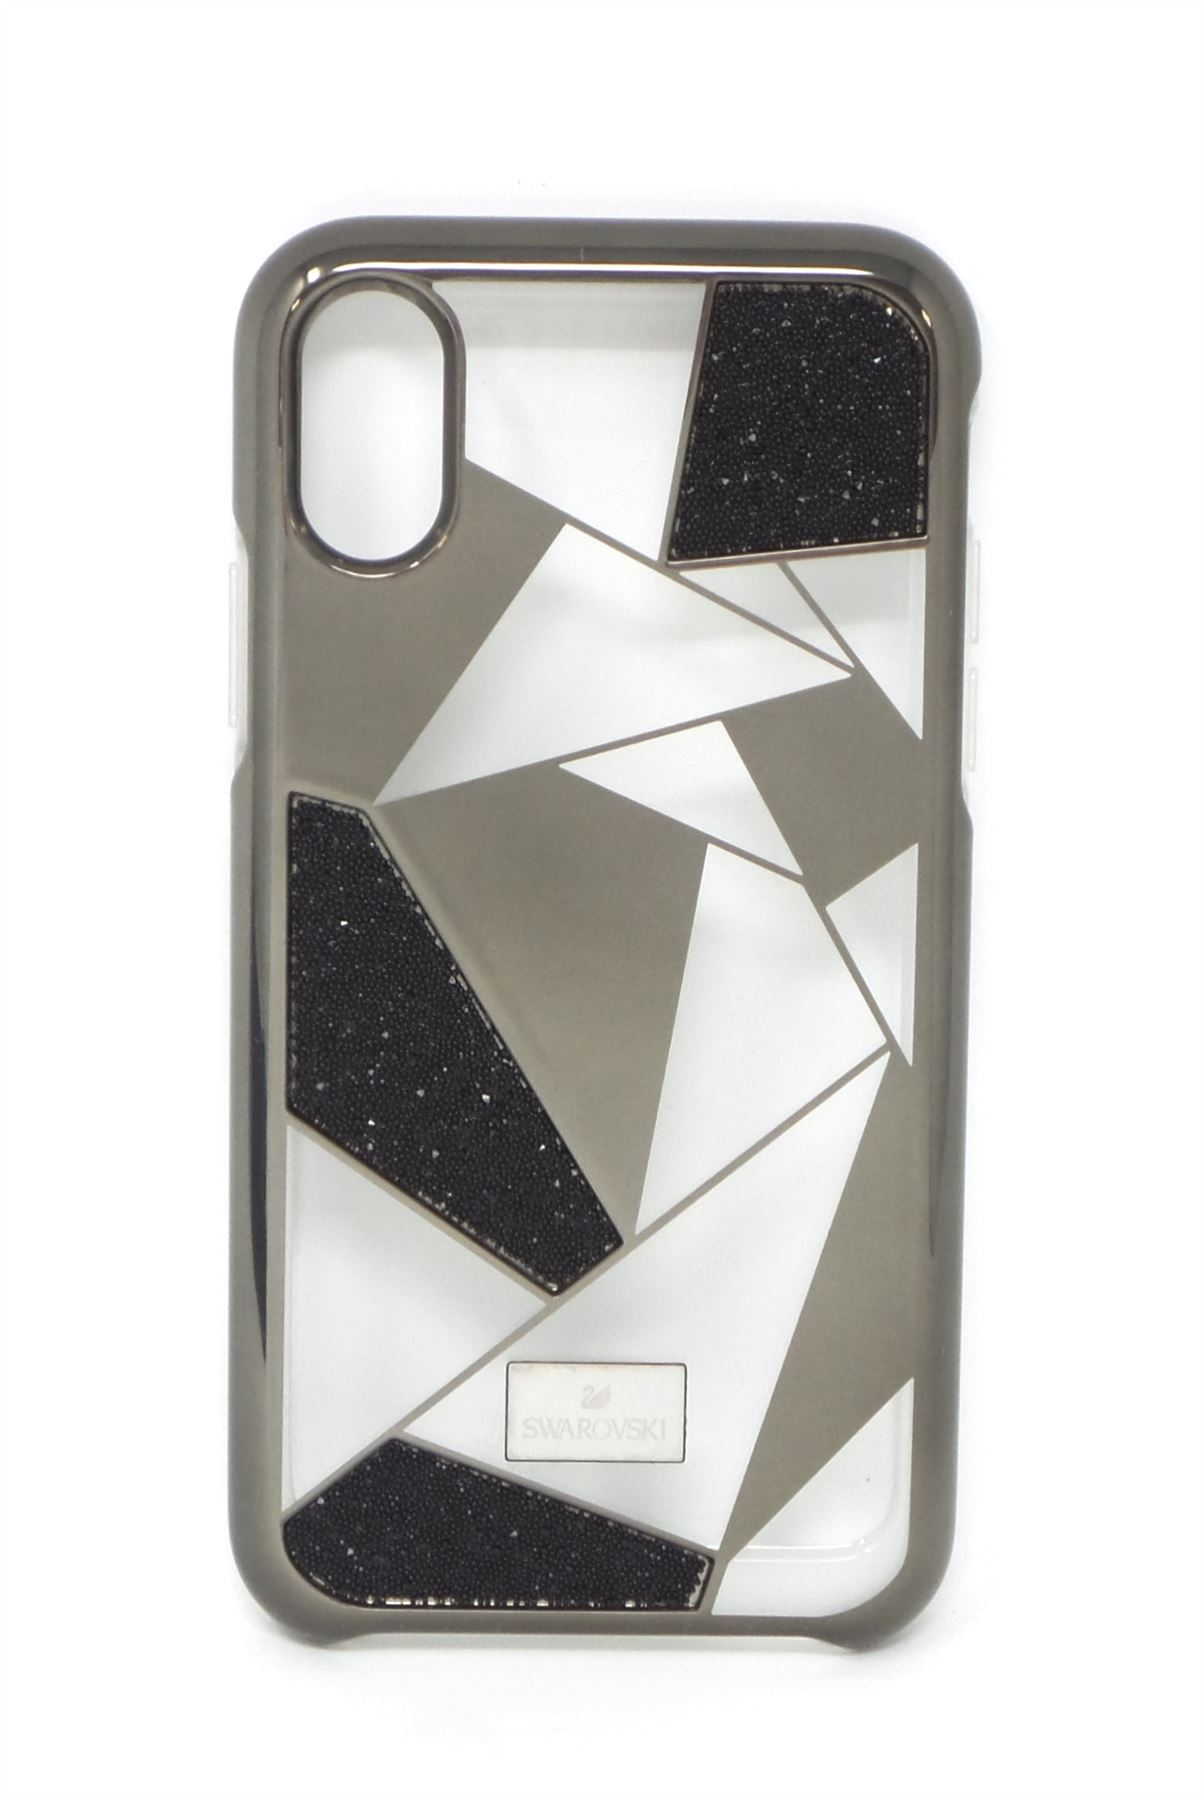 new style 897ae a4cf1 Details about Swarovski Heroism Case for Apple iPhone X Black/Gold/Clear  16071VRP New